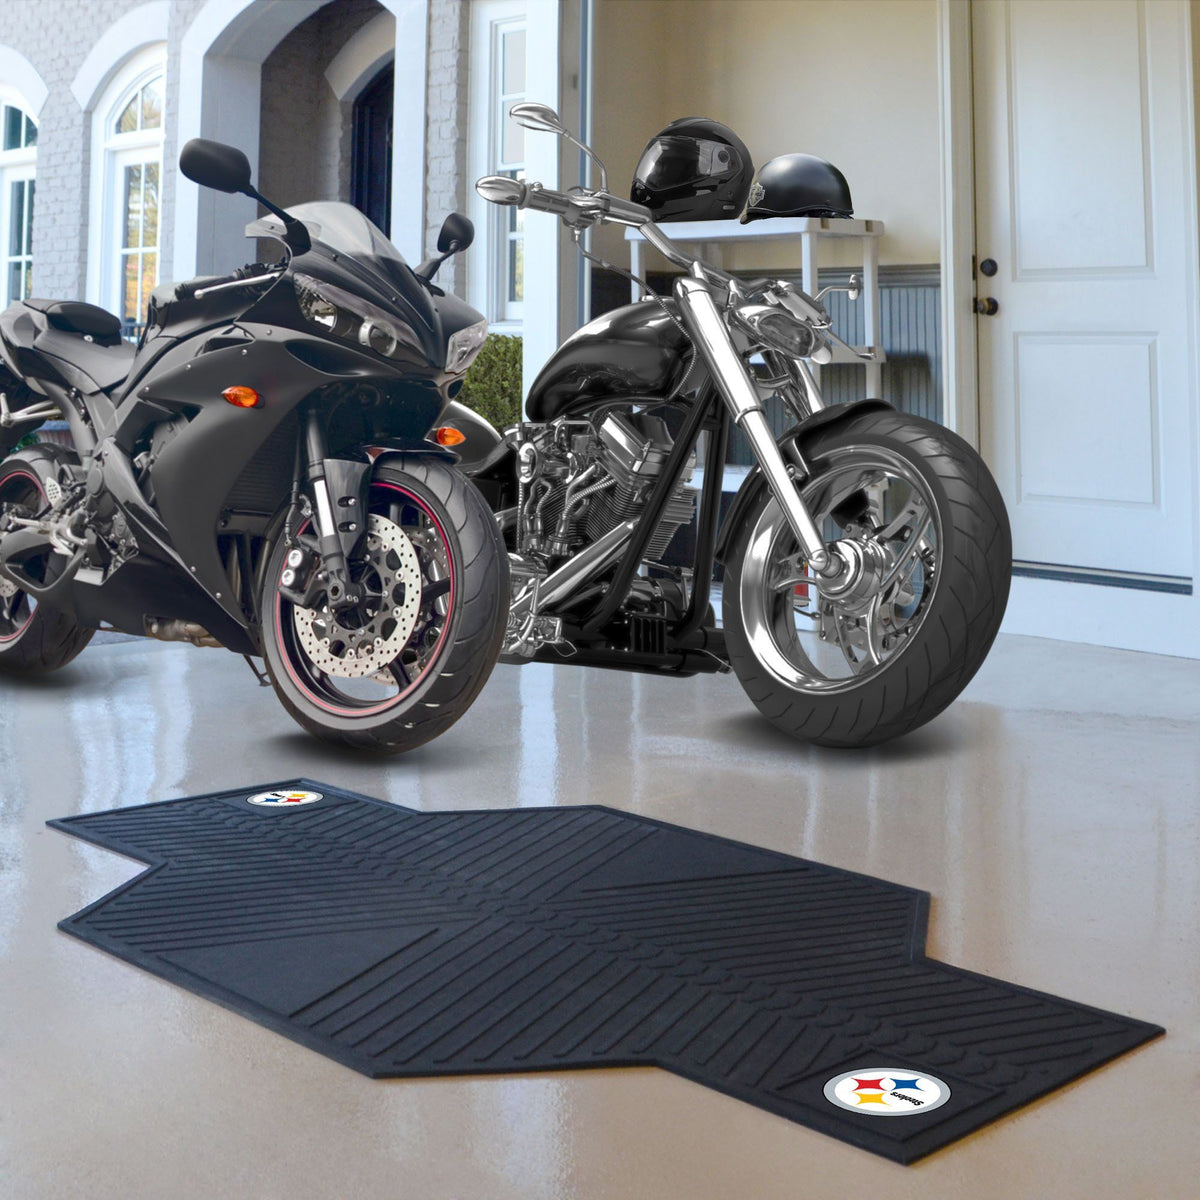 "NFL - Motorcycle Mat, 82.5"" x 42"" NFL Mats, Motorcycle Accessory, Motorcycle Mat, NFL, Auto Fan Mats Pittsburgh Steelers"